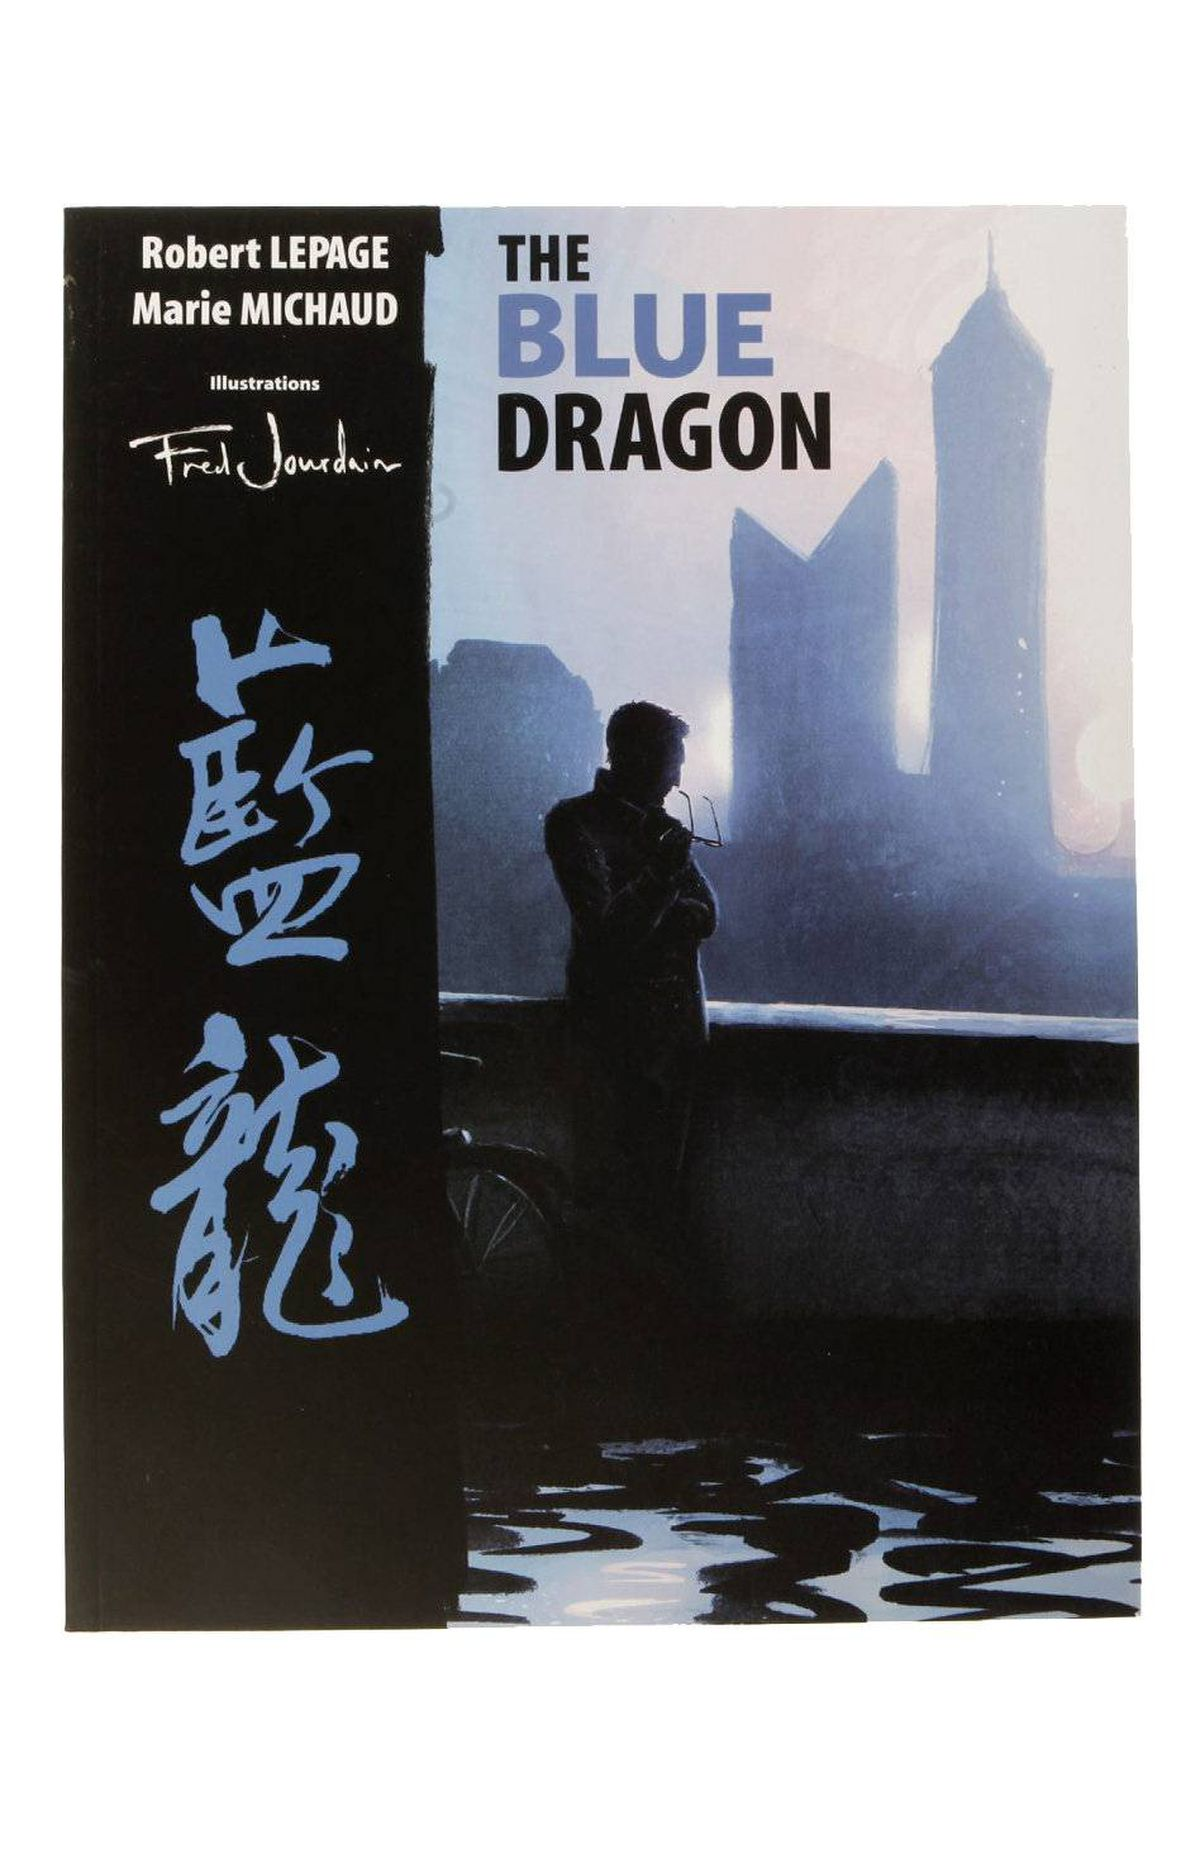 The Blue Dragon I've never seen a more beautiful theatre book than this graphic novel based on the play by Robert Lepage and Marie Michaud. Fred Jourdain's drawings tell the story of expat art dealer Pierre Lamontagne and his ex-lover, Claire Forêt, who has come to visit China to adopt a baby. Every word of the script makes it in. $14.40 on amazon.ca